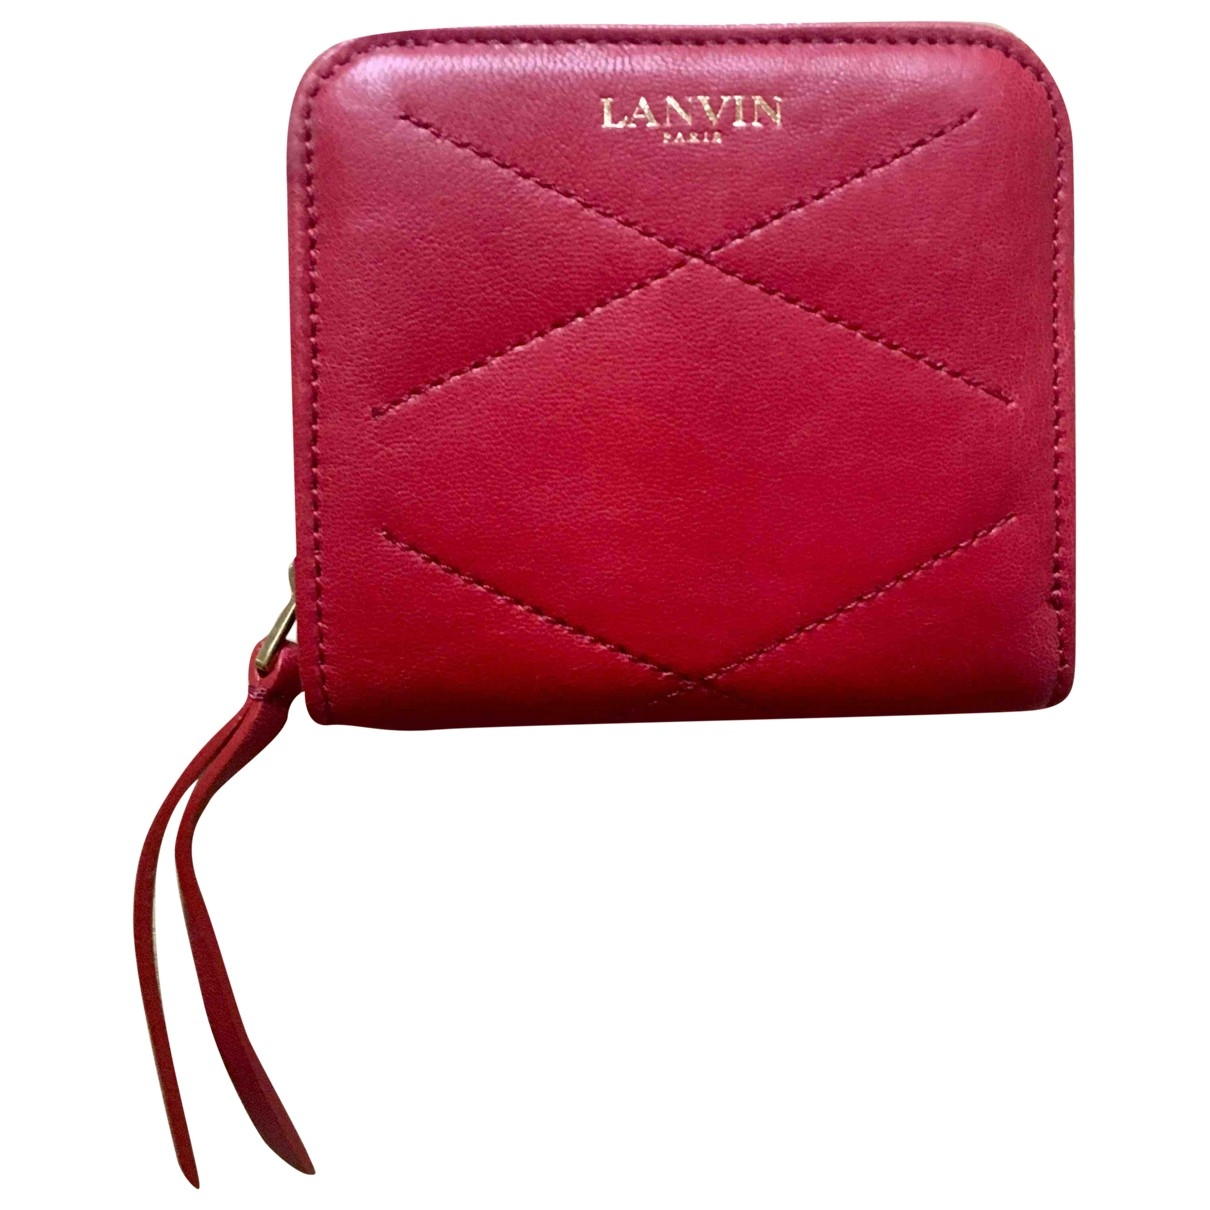 Lanvin \N Red Leather wallet for Women \N